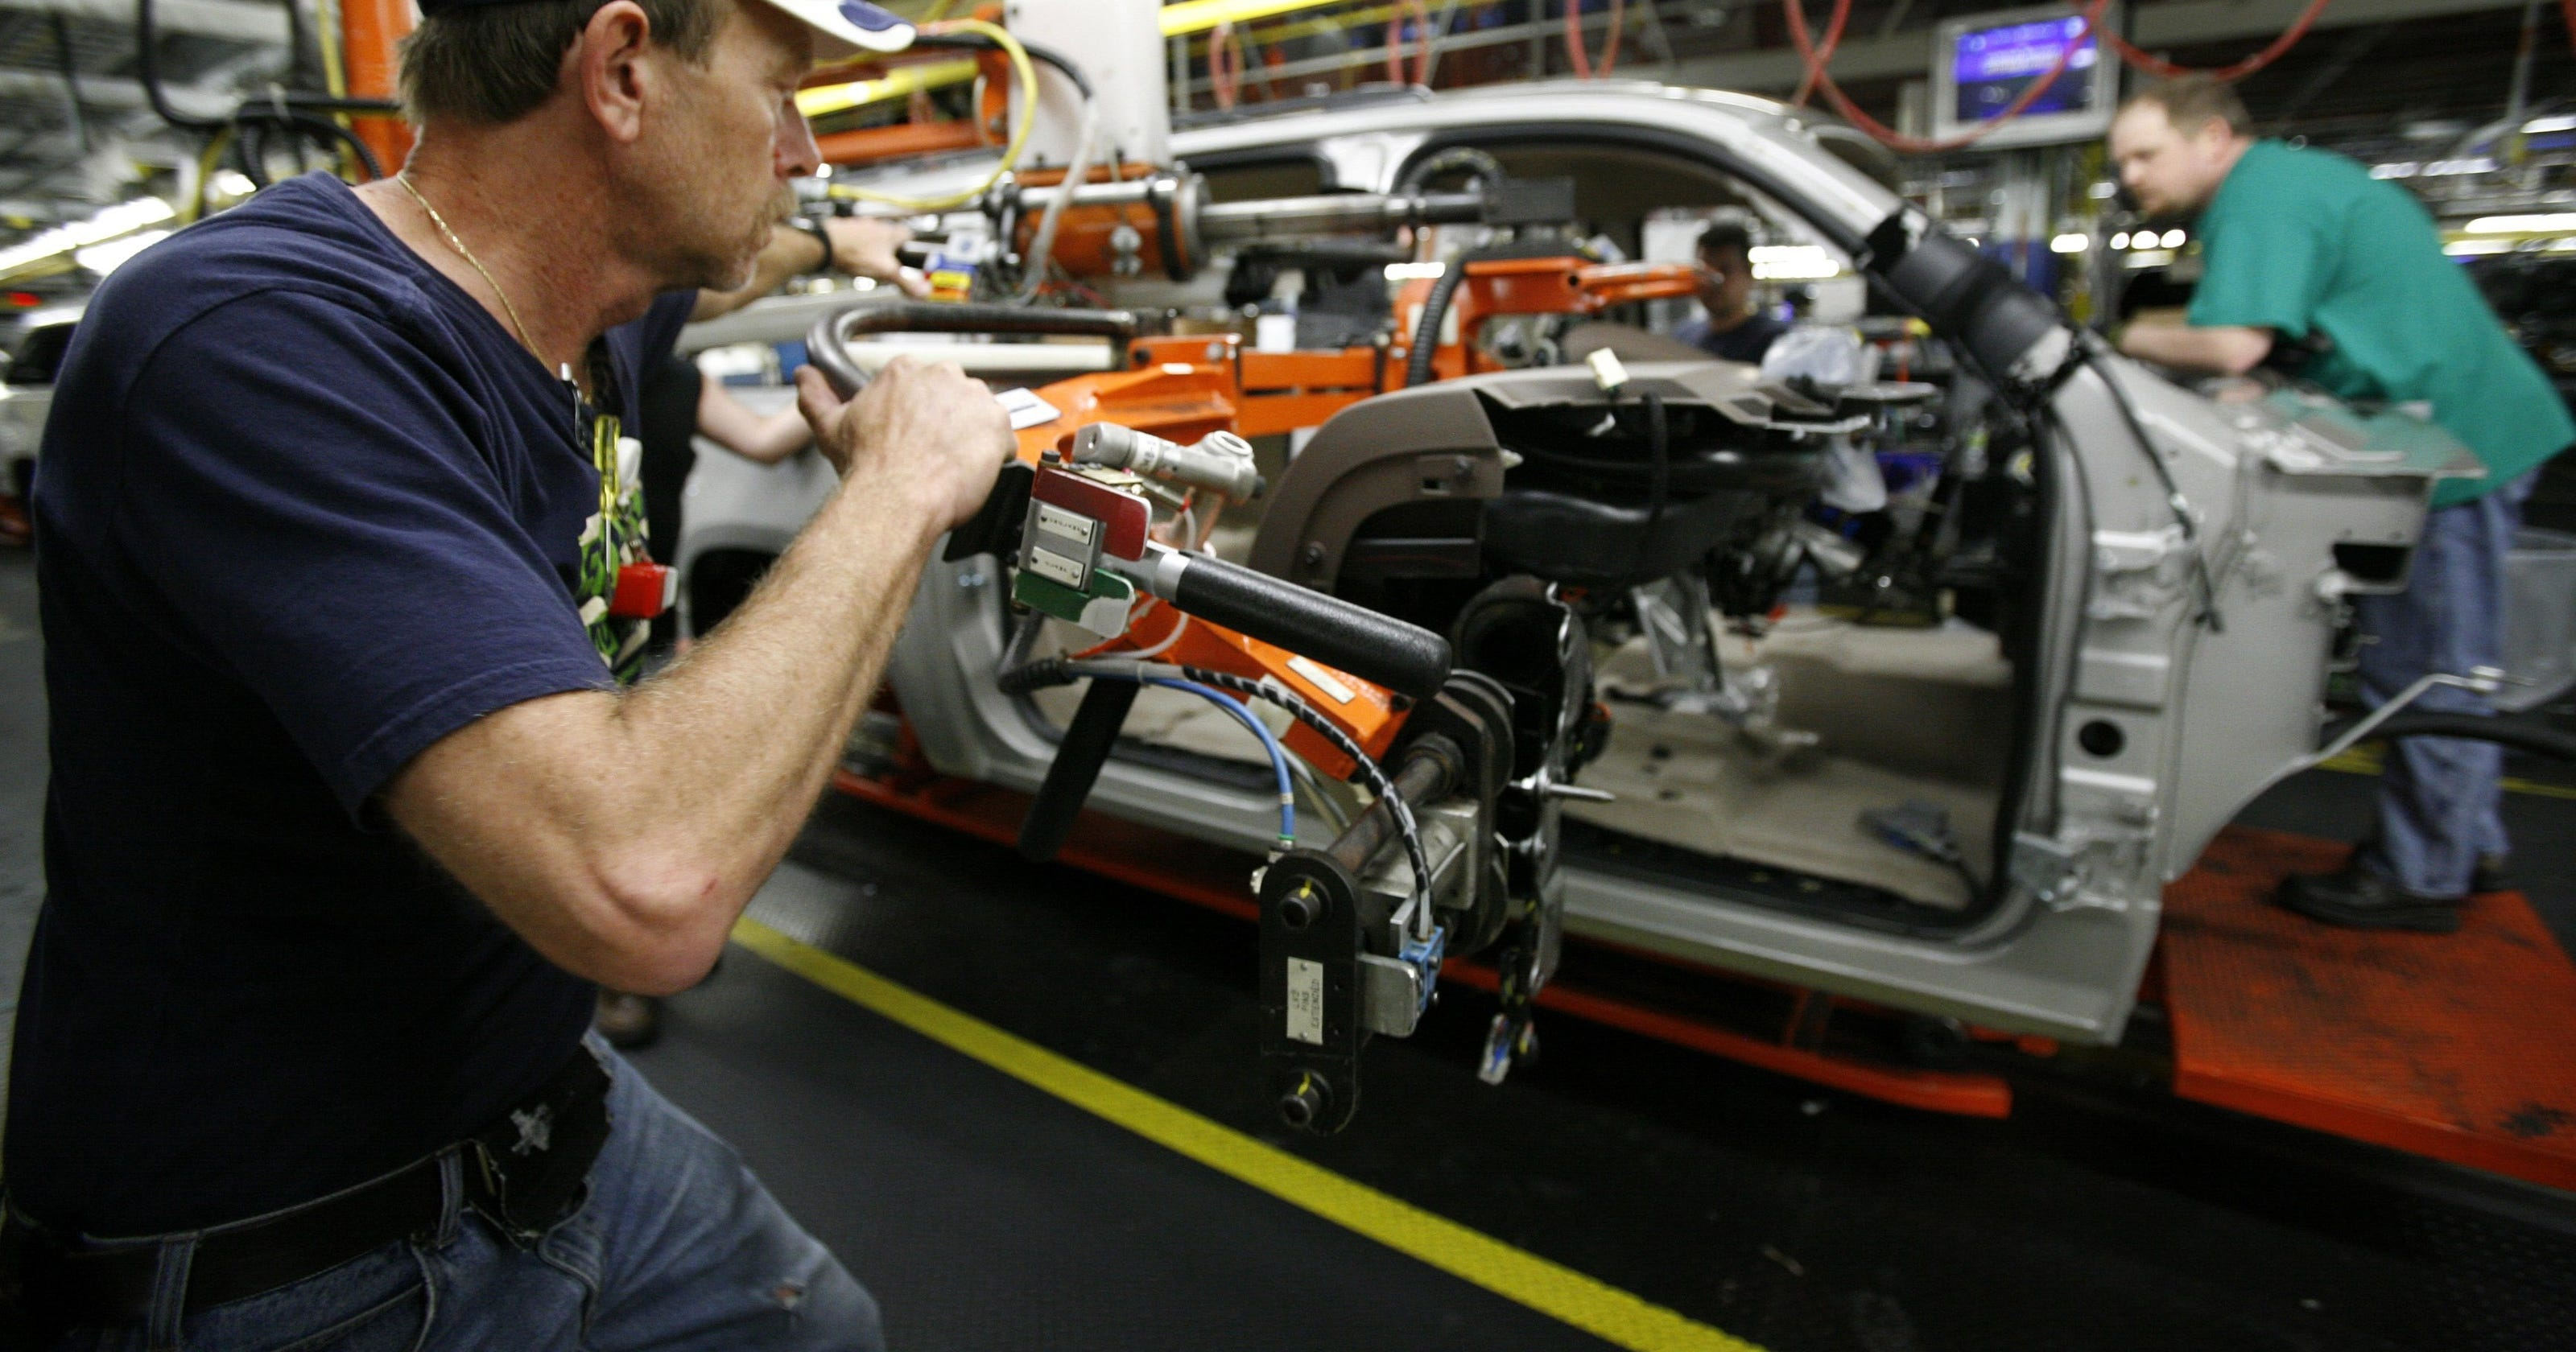 uaw's role in the automotive bailout Gov john kasich at a honda plant in marysville, ohio credit jason fulford for the new york times when i suggested to kasich, aboard his plane, that obama's auto bailout must have played.